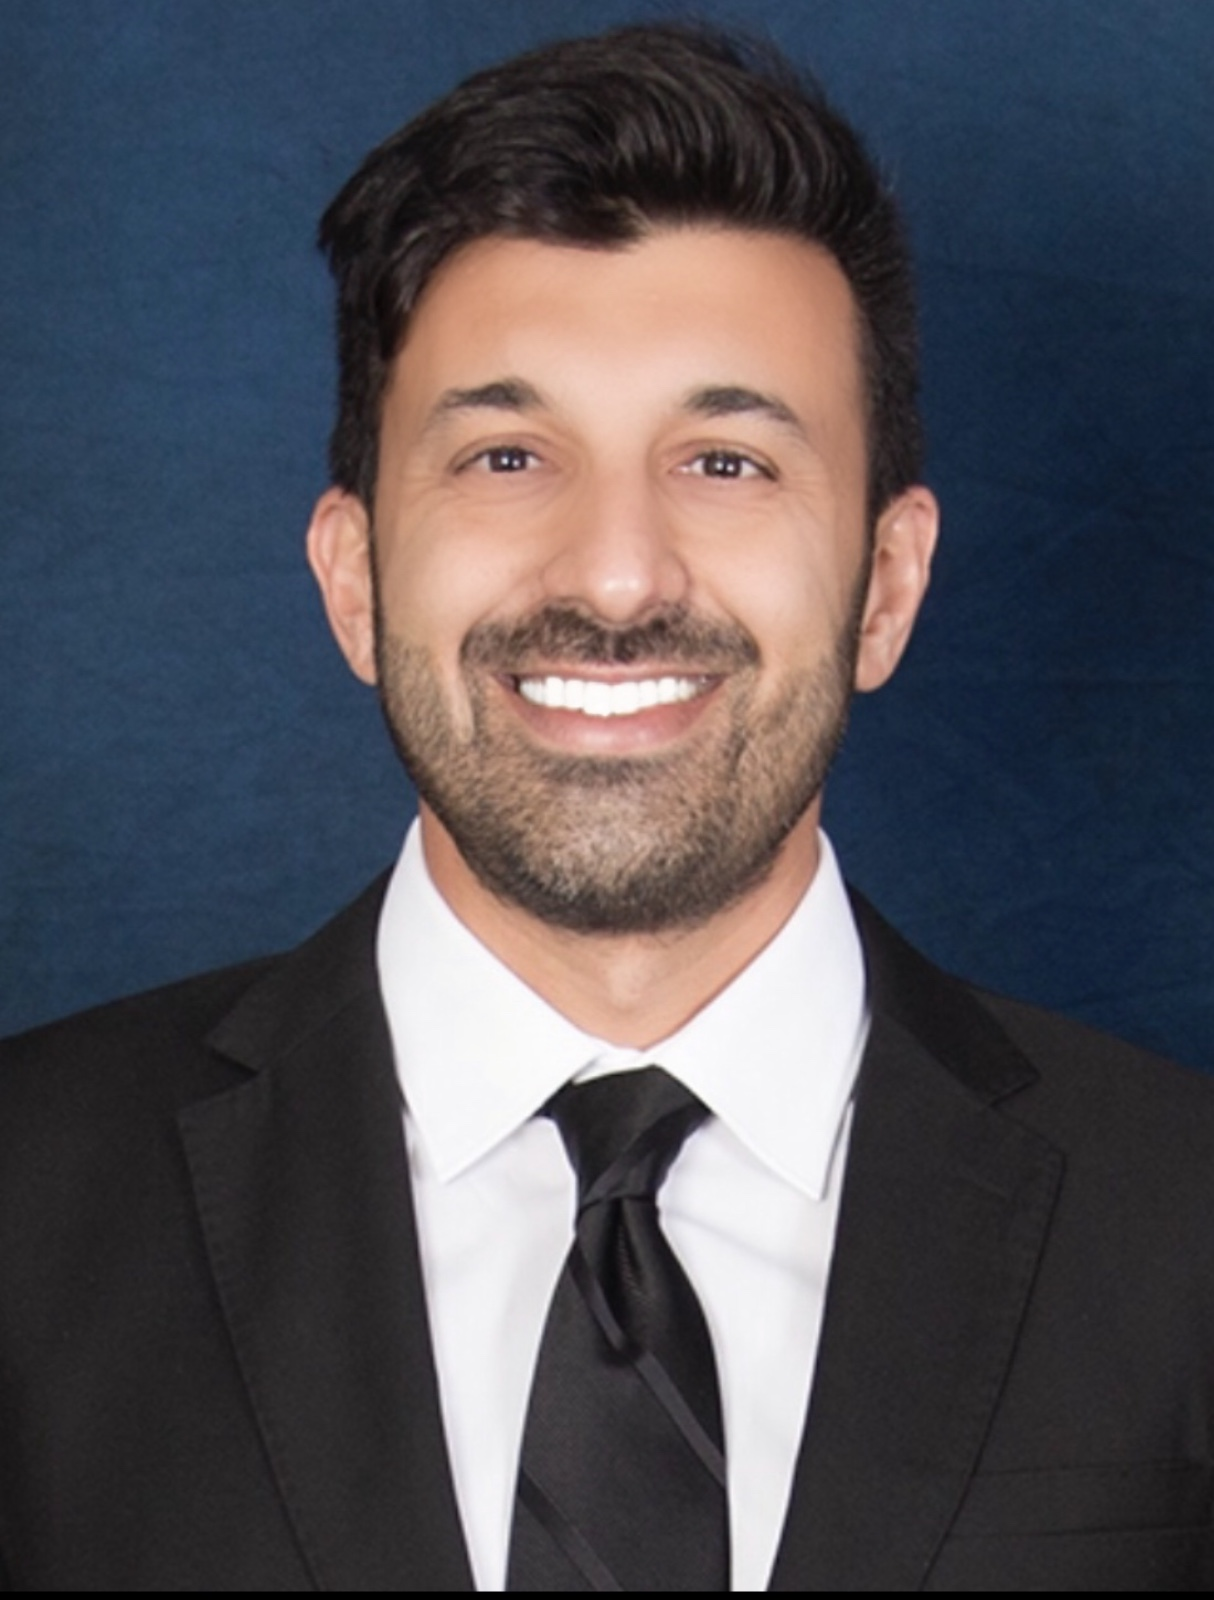 Nathaniel Moradzadeh, MD Our Doctors